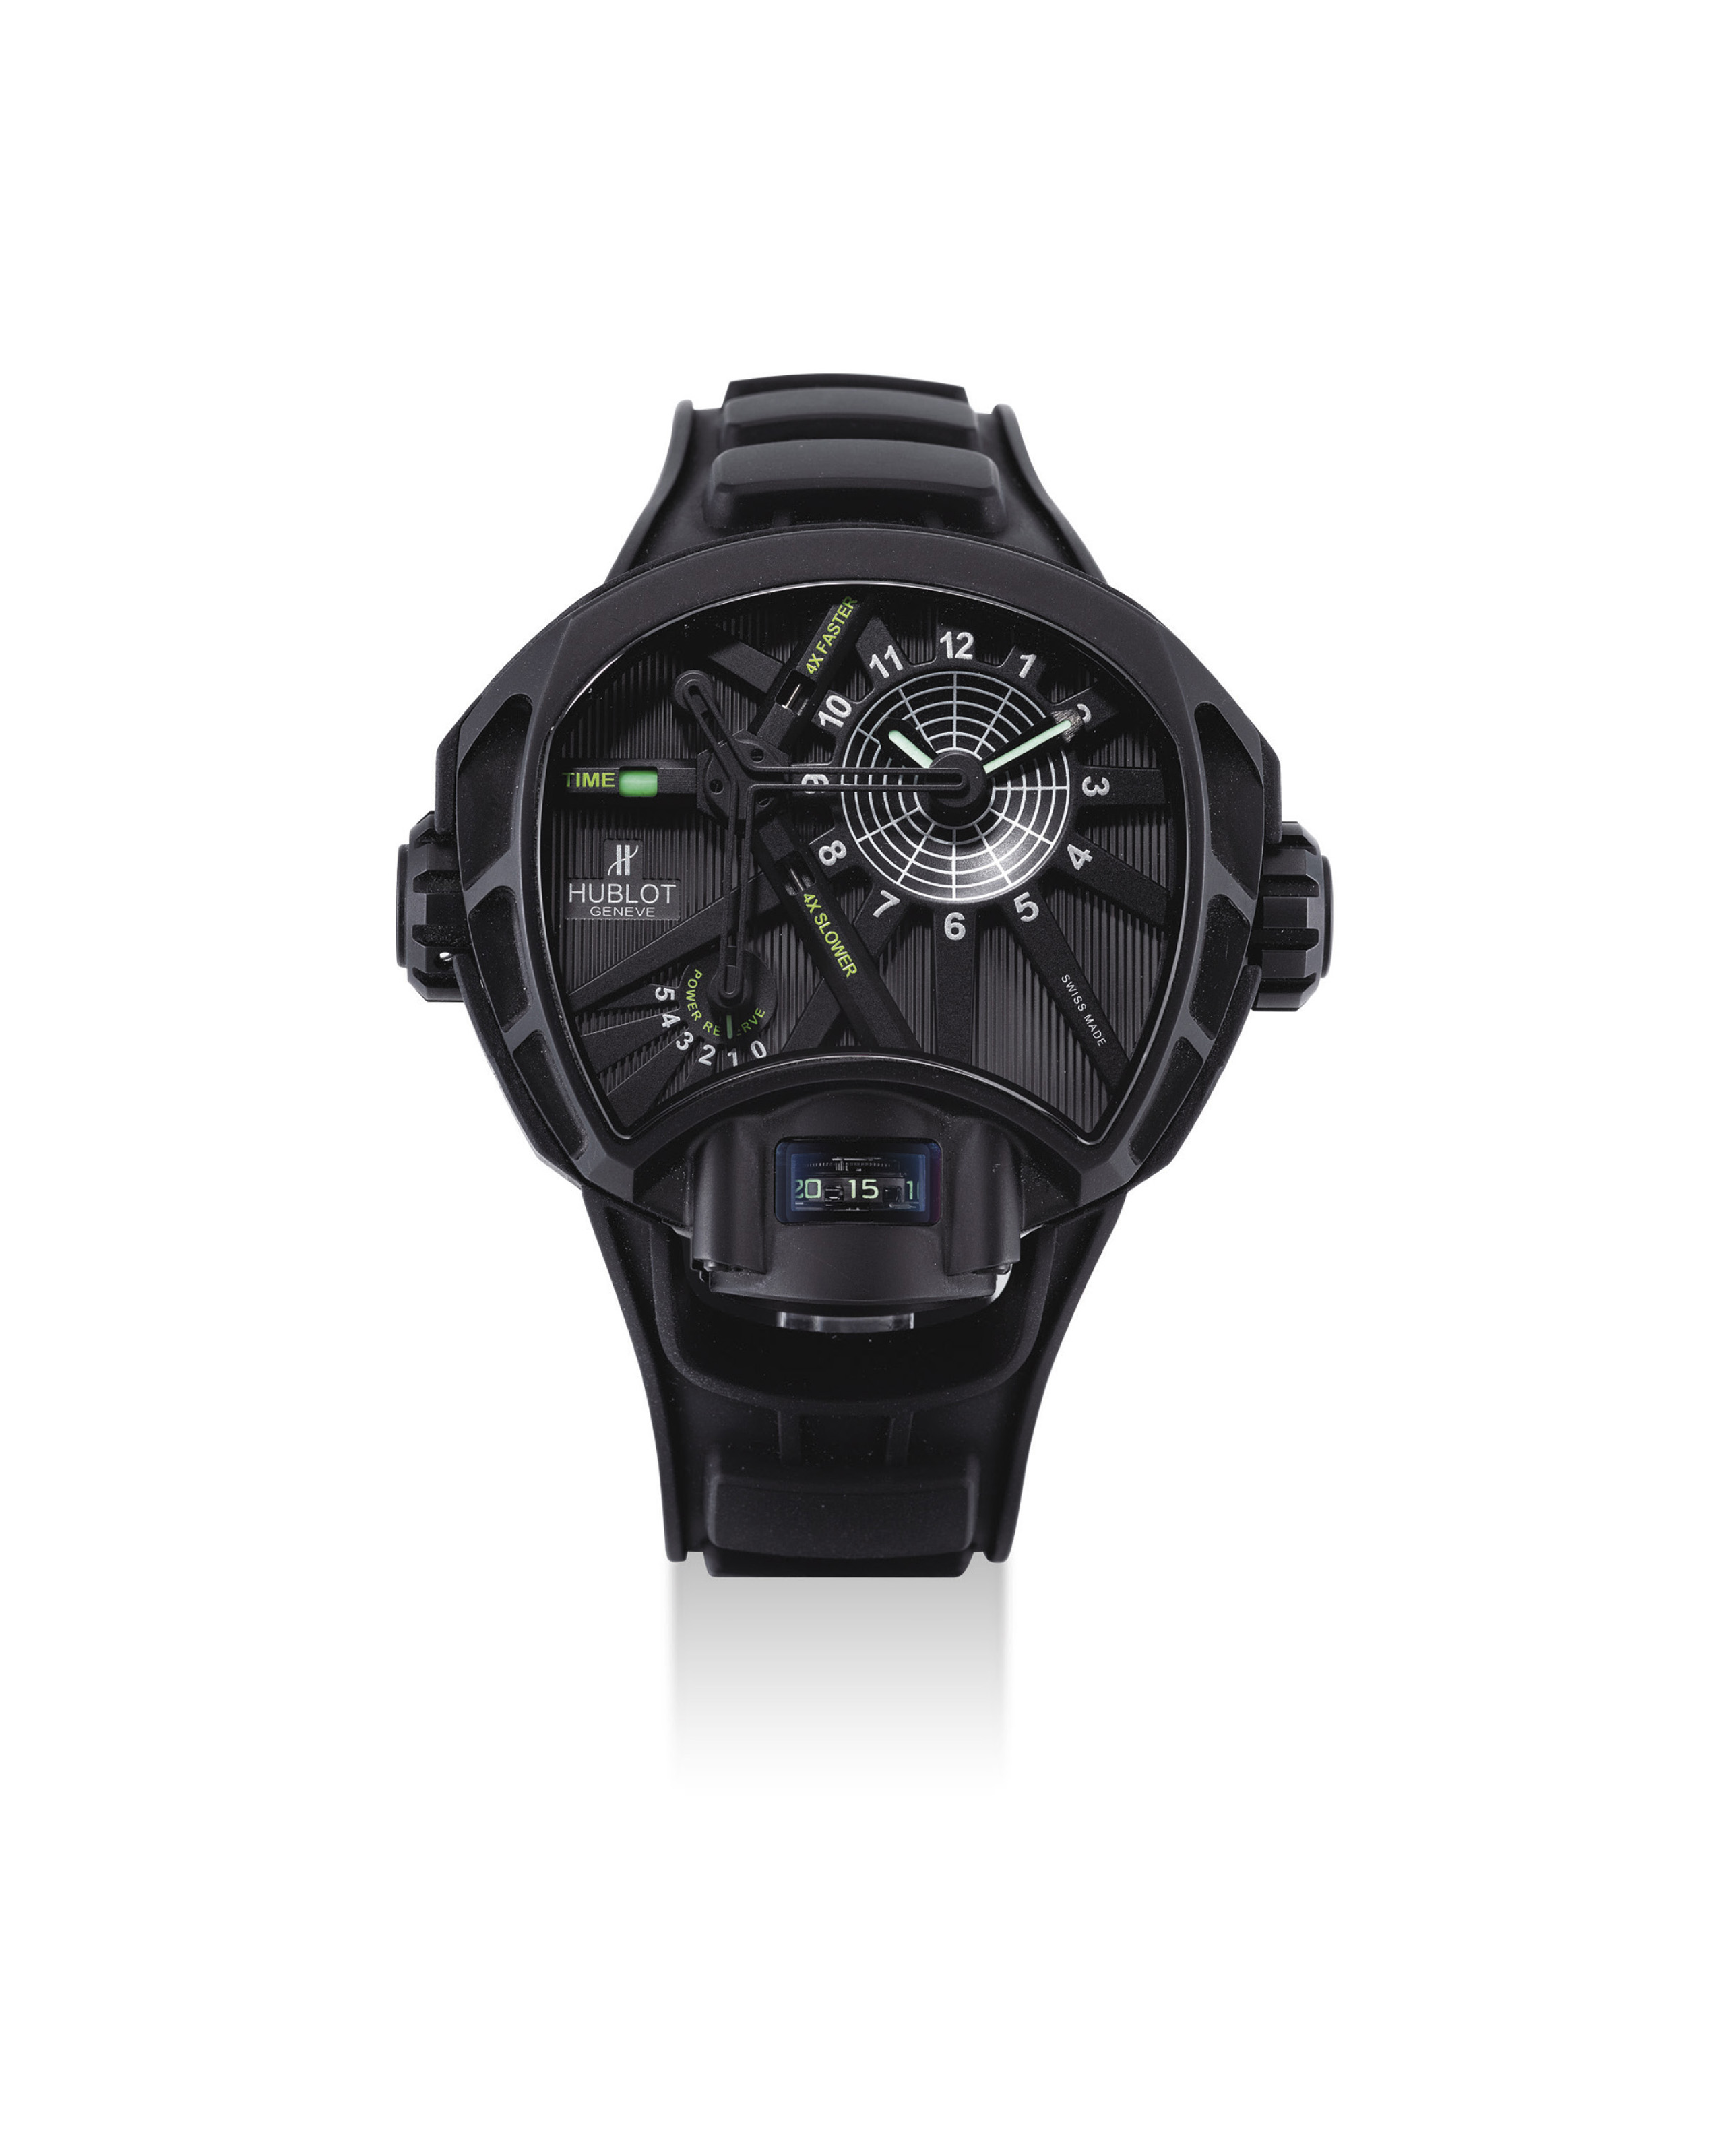 HUBLOT. A VERY FINE, RARE AND UNUSUAL BLACK PVD-COATED TITANIUM LIMITED EDITION TOURBILLON ASYMMETRICAL WRISTWATCH WITH POWER RESERVE AND TIME SPEED INDICATION